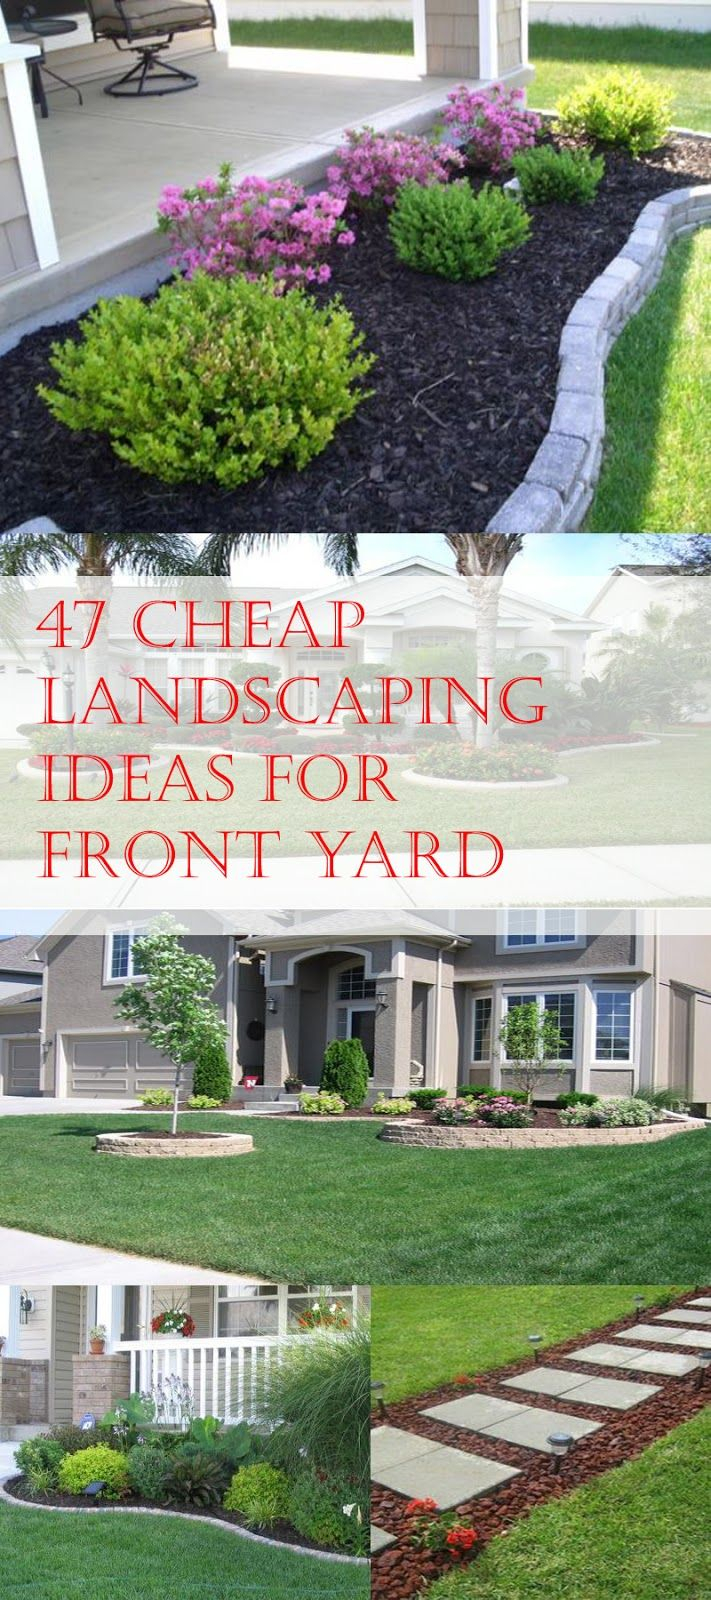 47 Cheap Landscaping Ideas For Front Yard Gardens Cheap throughout How Much Is It To Landscape A Backyard